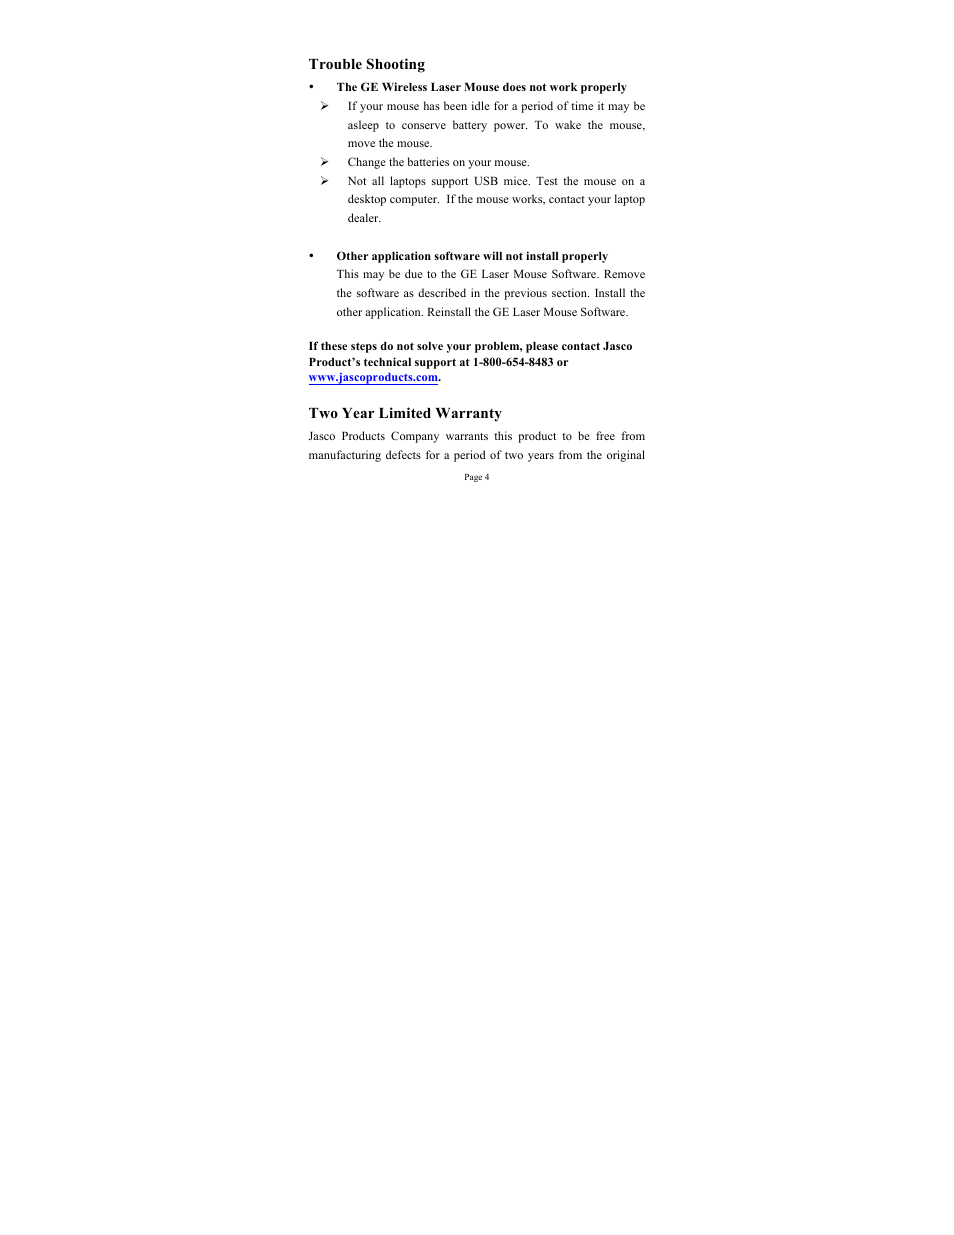 Ge Tech Support Ge 98536 Ge Wireless Laser Mouse User Manual Page 4 7